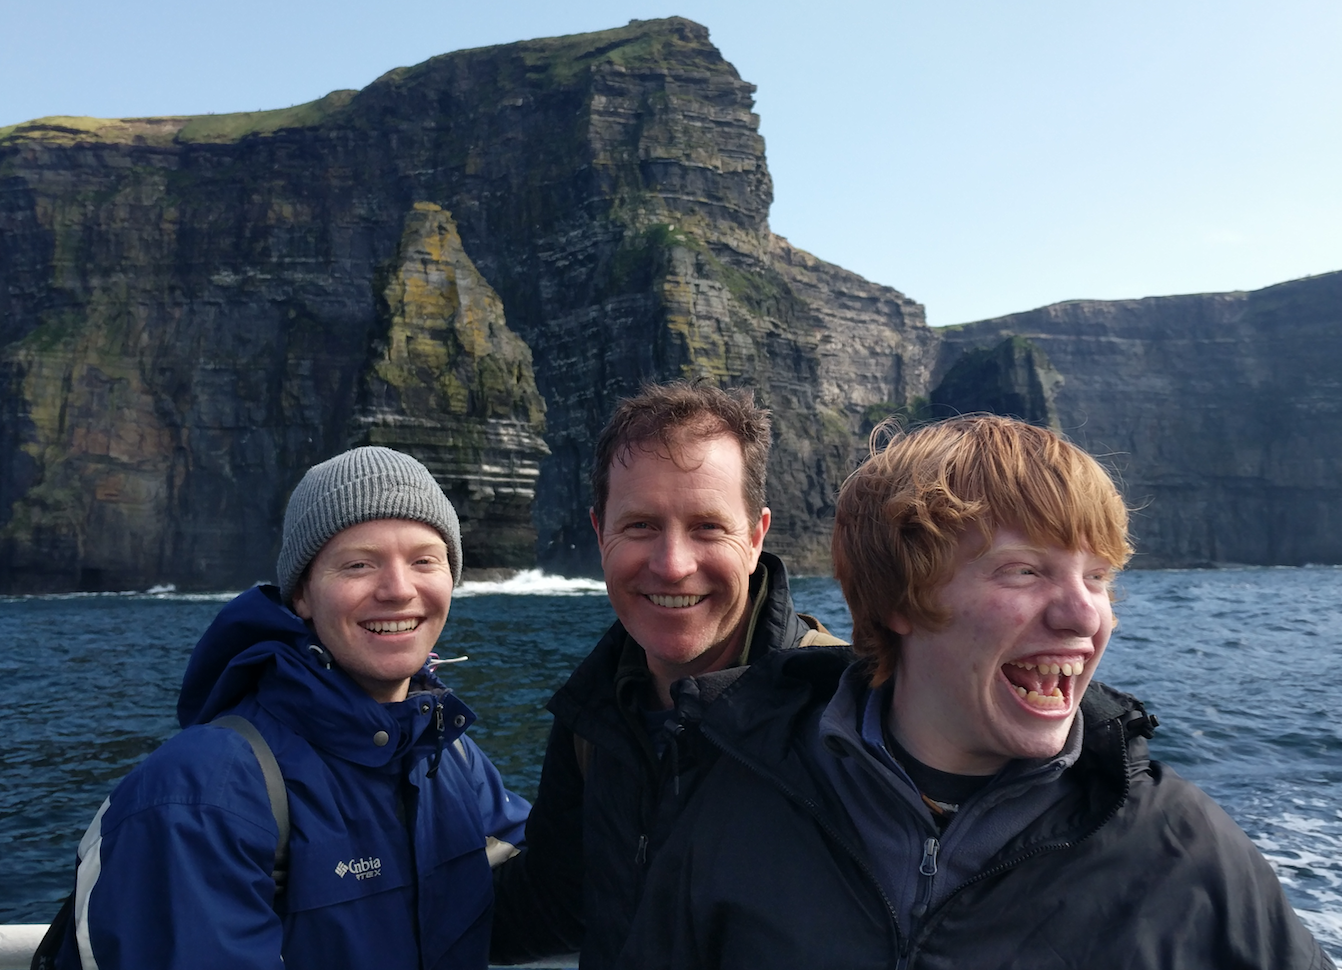 With my sons Matty and Duncan at the Cliffs of Moher, County Clare, Ireland